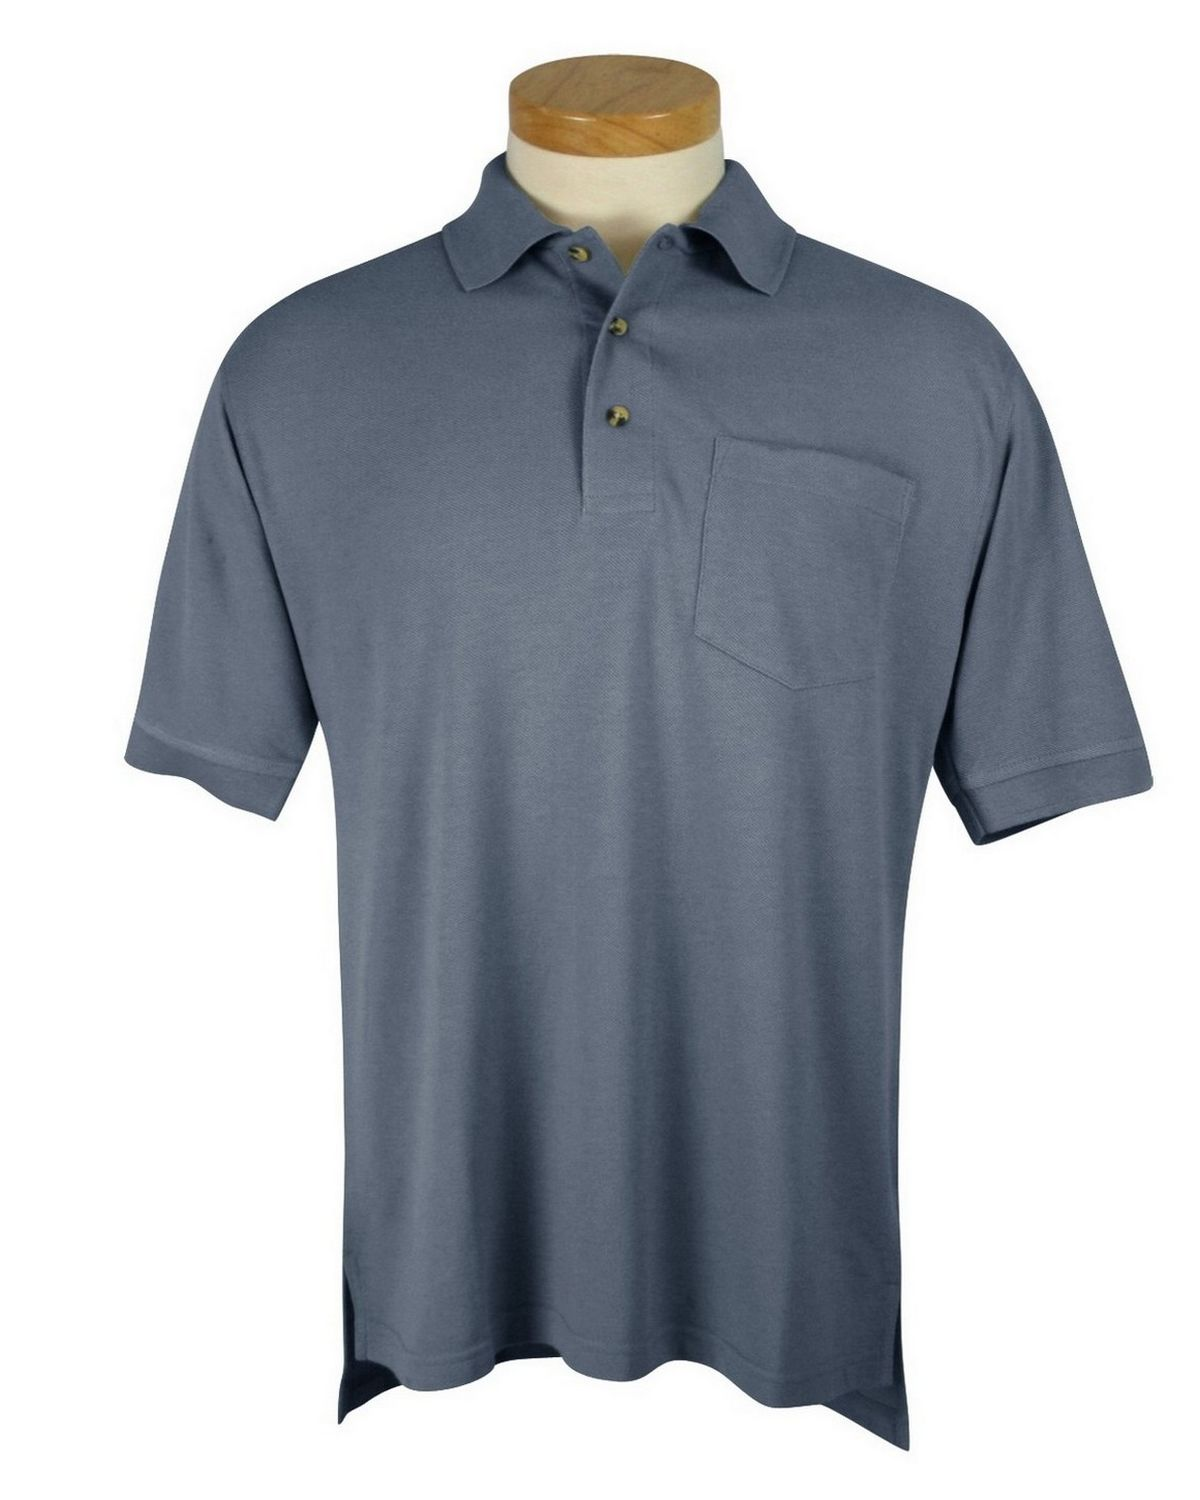 Buy Tri Mountain 106 Mens Pique Pocketed Golf Shirt